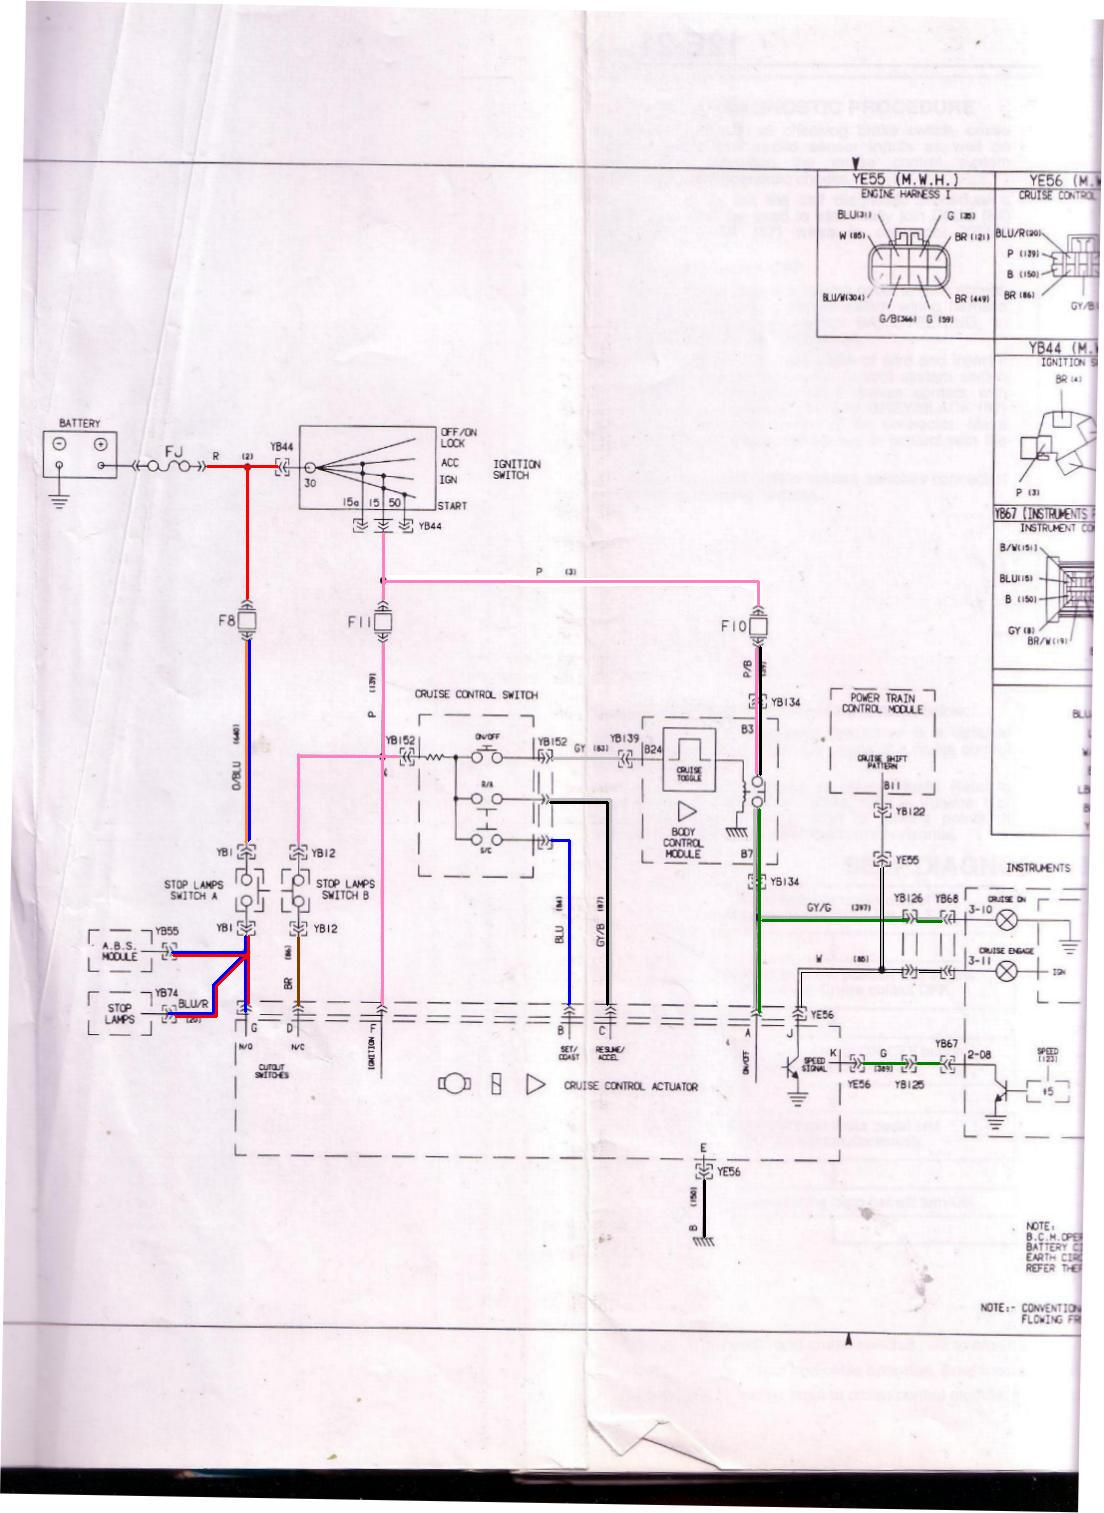 vs cruise control wiring diagram just commodores vn commodore wiring diagram pdf at pacquiaovsvargaslive.co